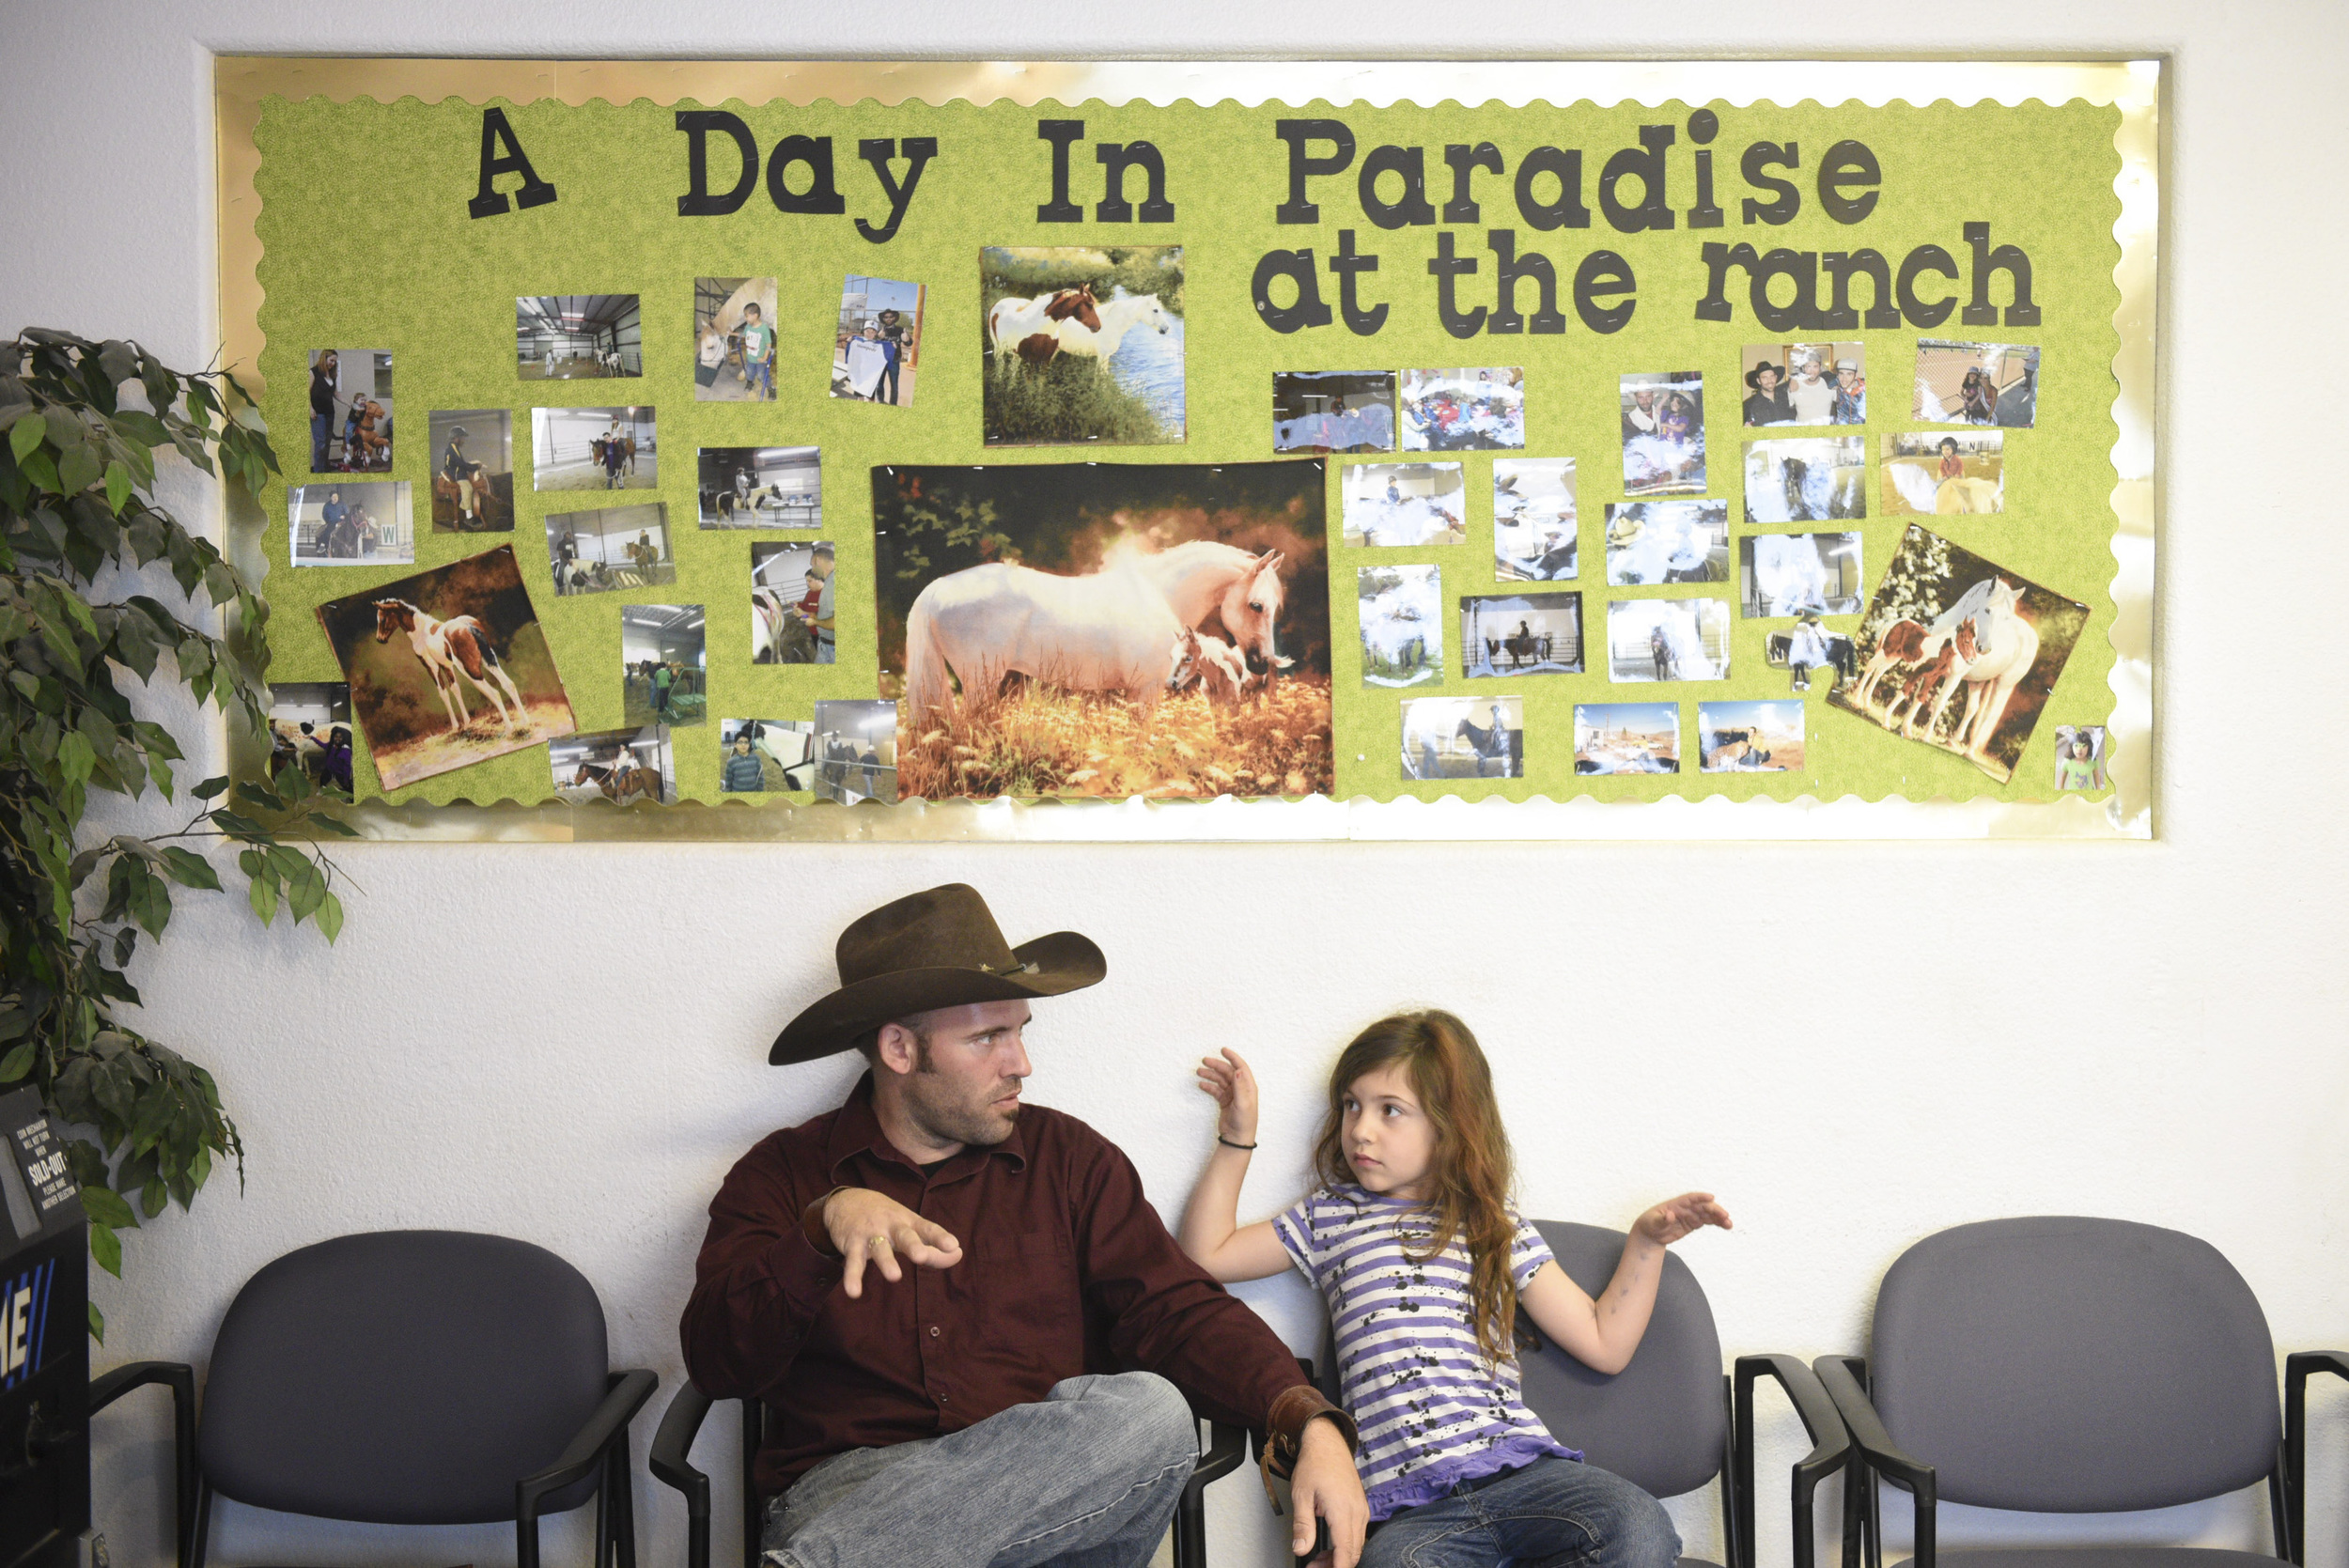 Paradise Rancher owner, Paul Roger's and his 7 year old daughter, Laura Rogers, right, sit in the officeat Paradise Ranch in Las Vegas, Monday, June 1, 2015. (Jason Ogulnik/Las Vegas Review-Journal)